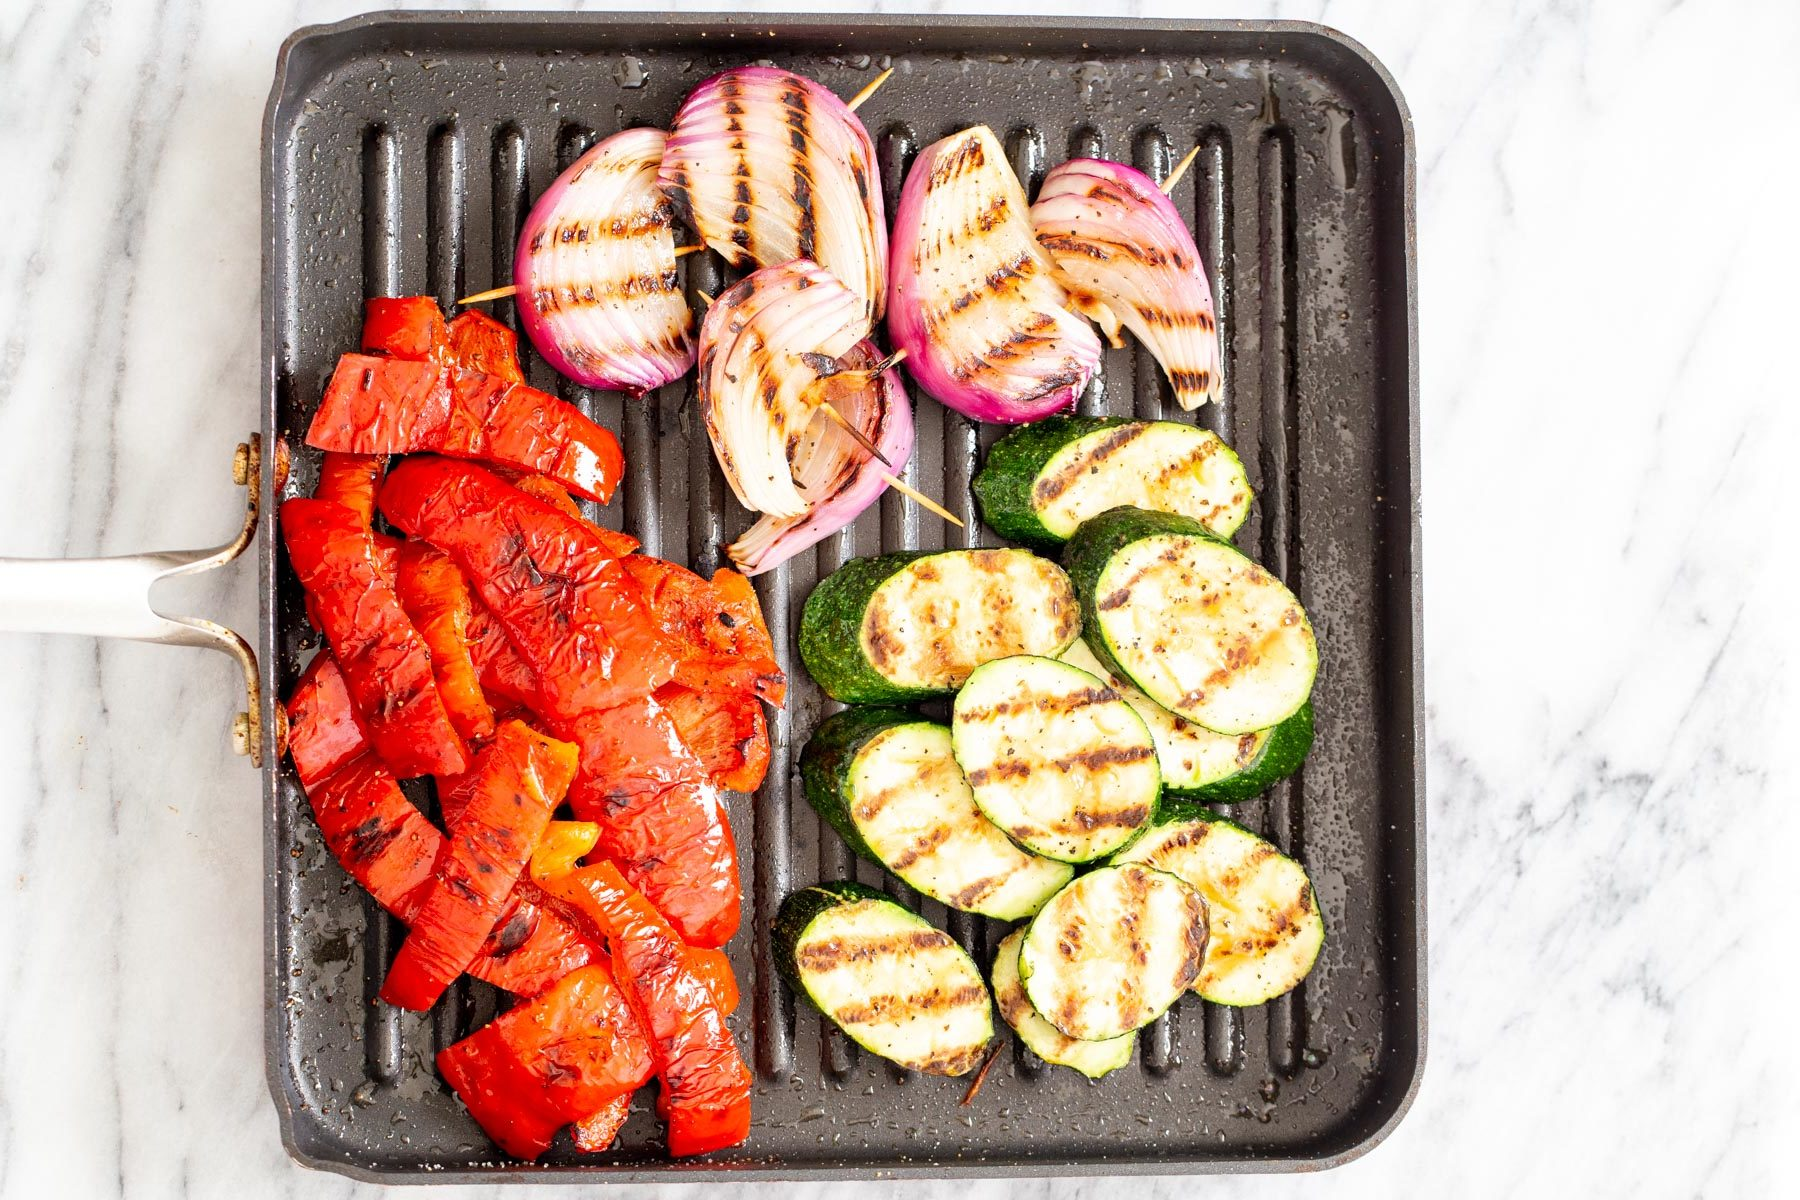 grilled bell pepper, zucchini and onion wedges in a black grill pan